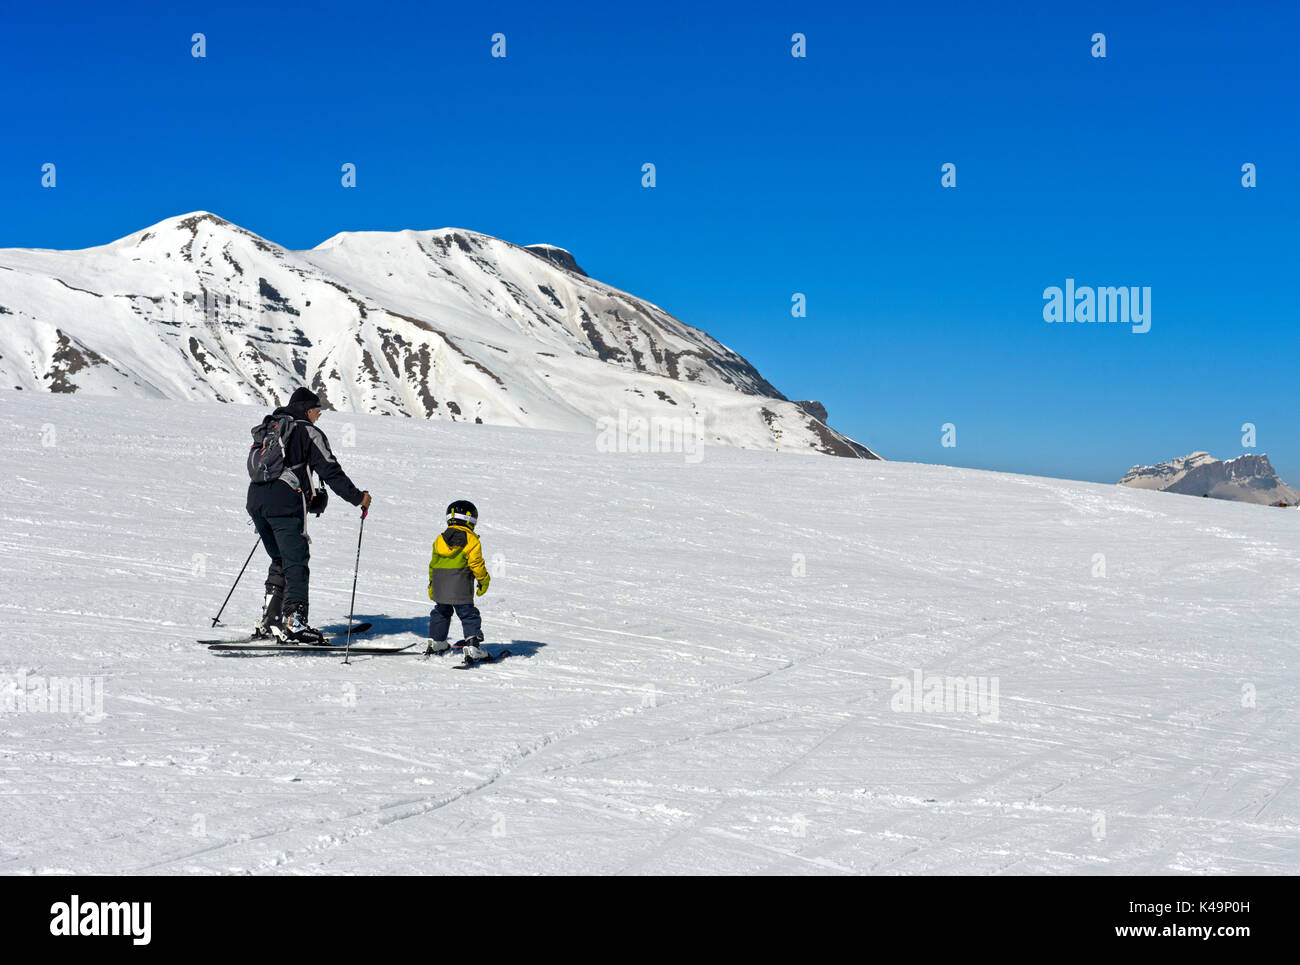 First Steps On Skis, Skiing Area Les Contamines, Montjoie, Haute, Savoie, France Stock Photo